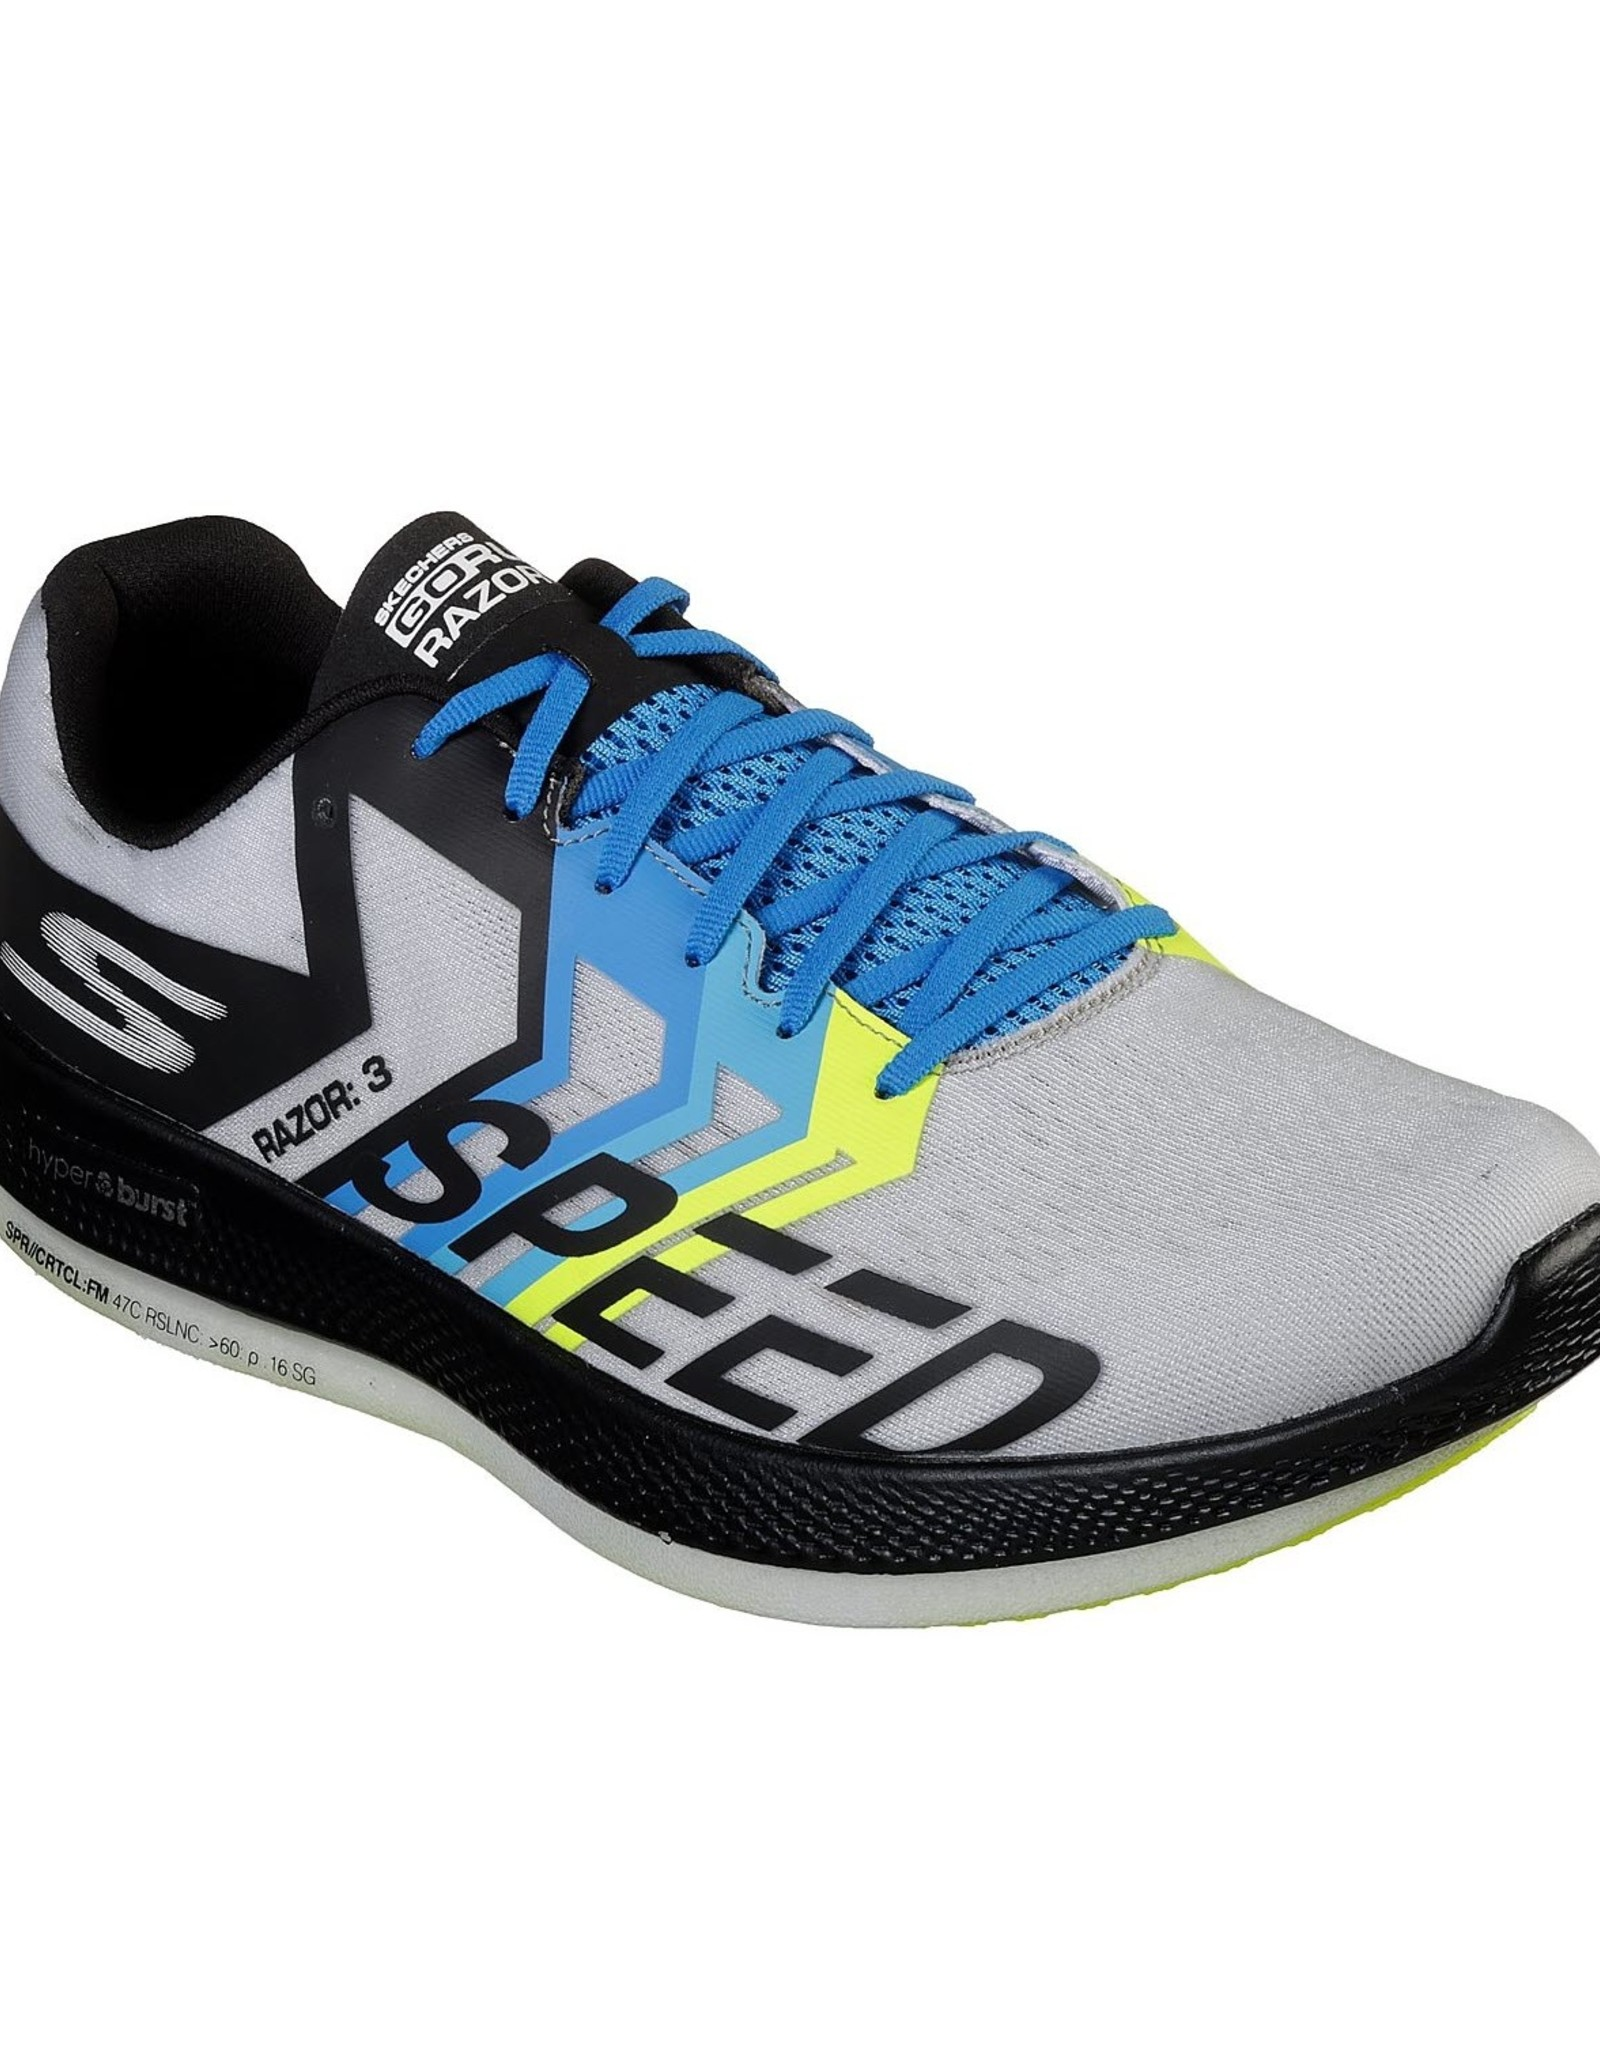 Skechers Performance Razor 3